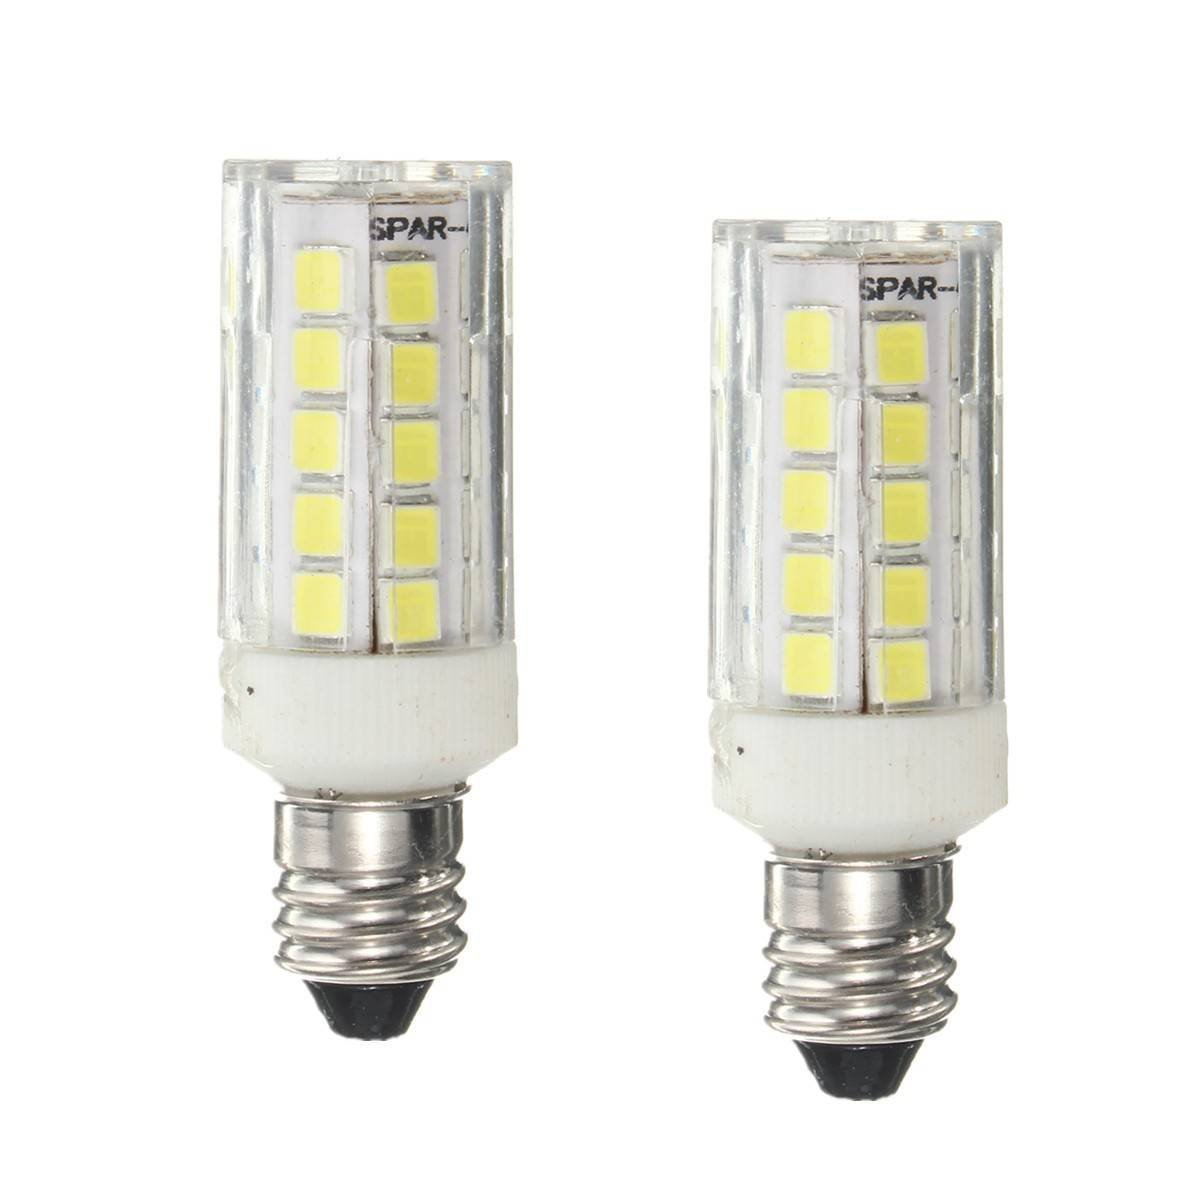 Kingso E11 4w Led Bulb 40w Halogen Replacement Lights 450 Lumens Mini Candelab Ebay